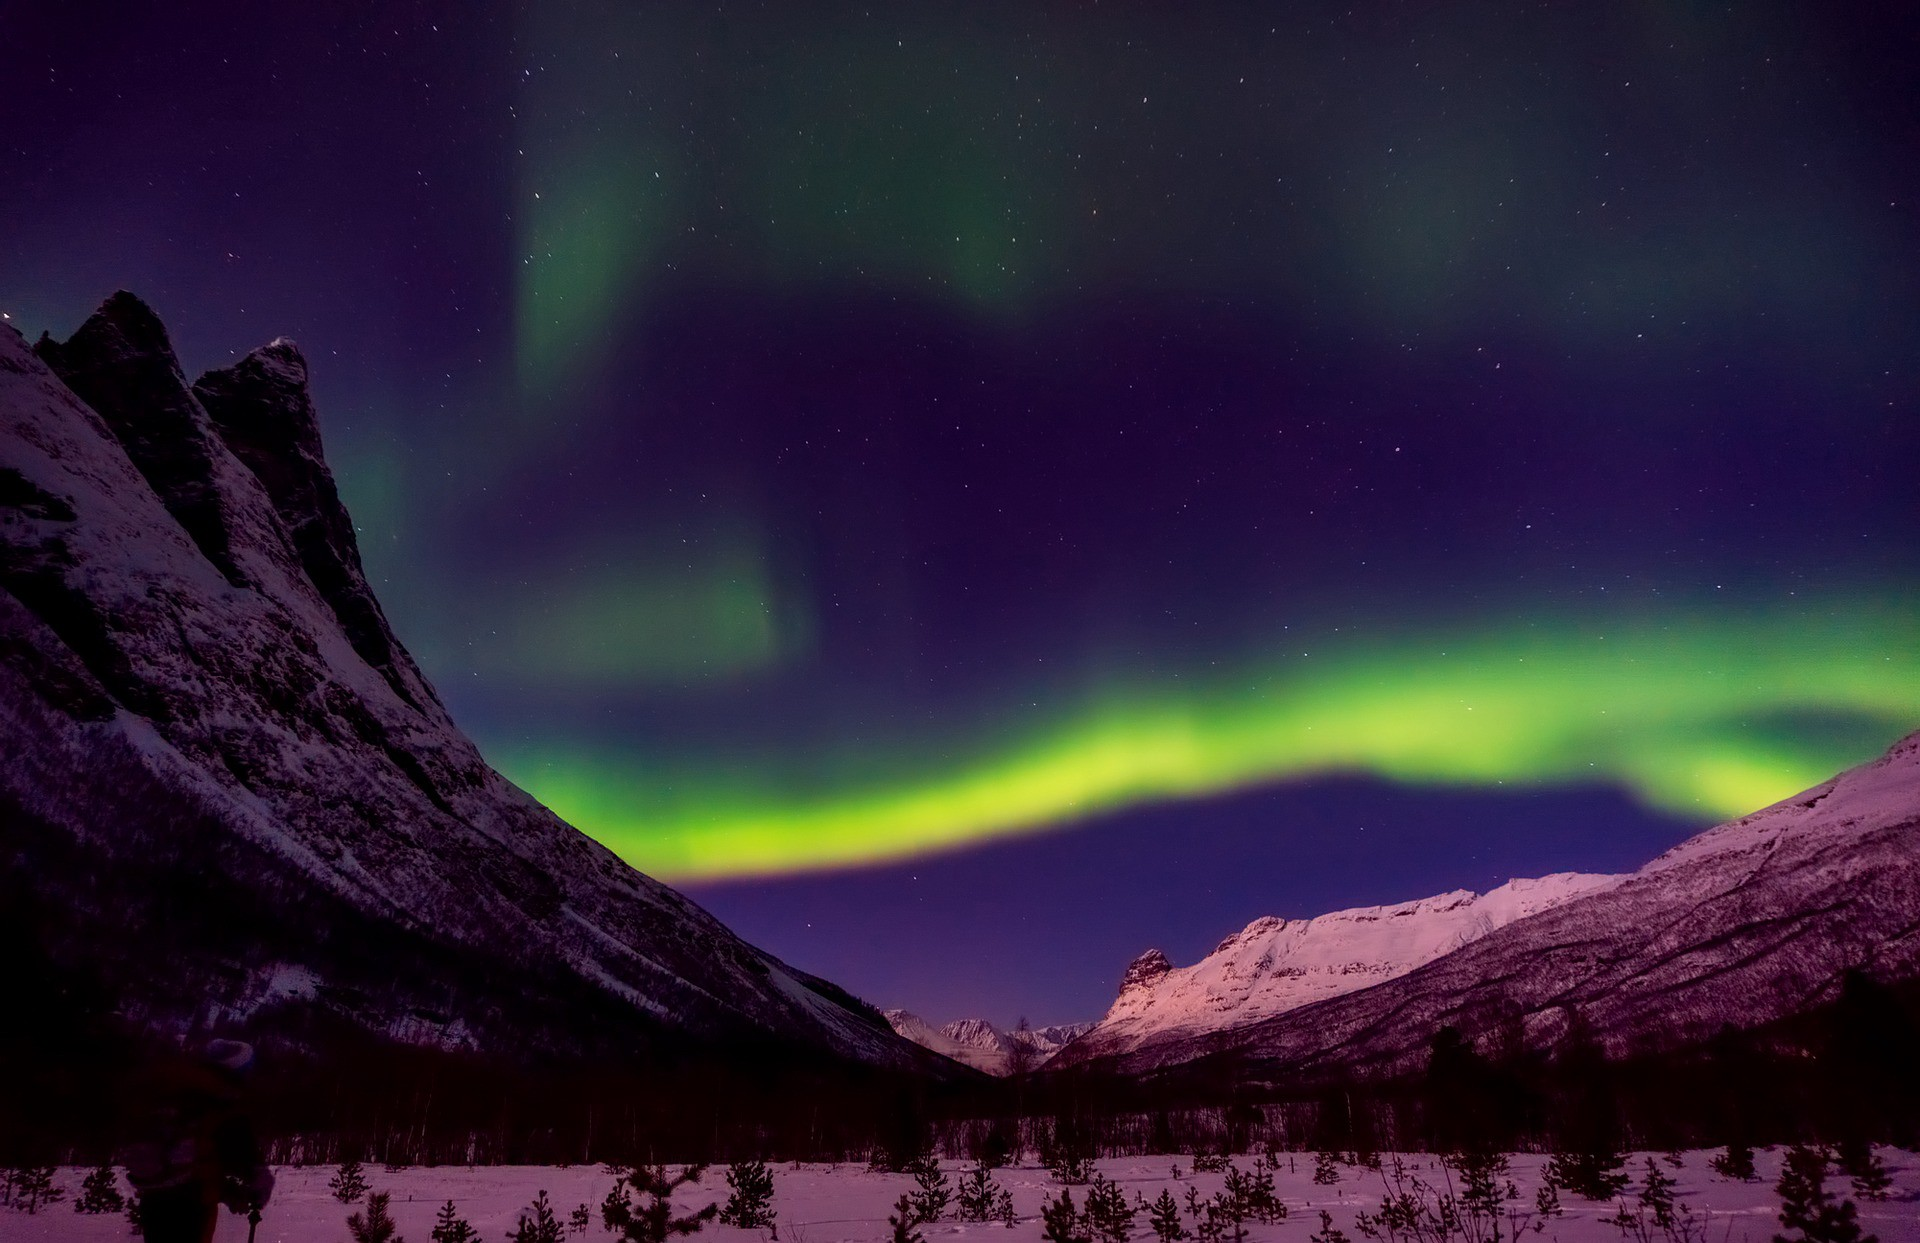 A view through a mountain valley of the northern lights, lighting the sky with a spectrum of colors